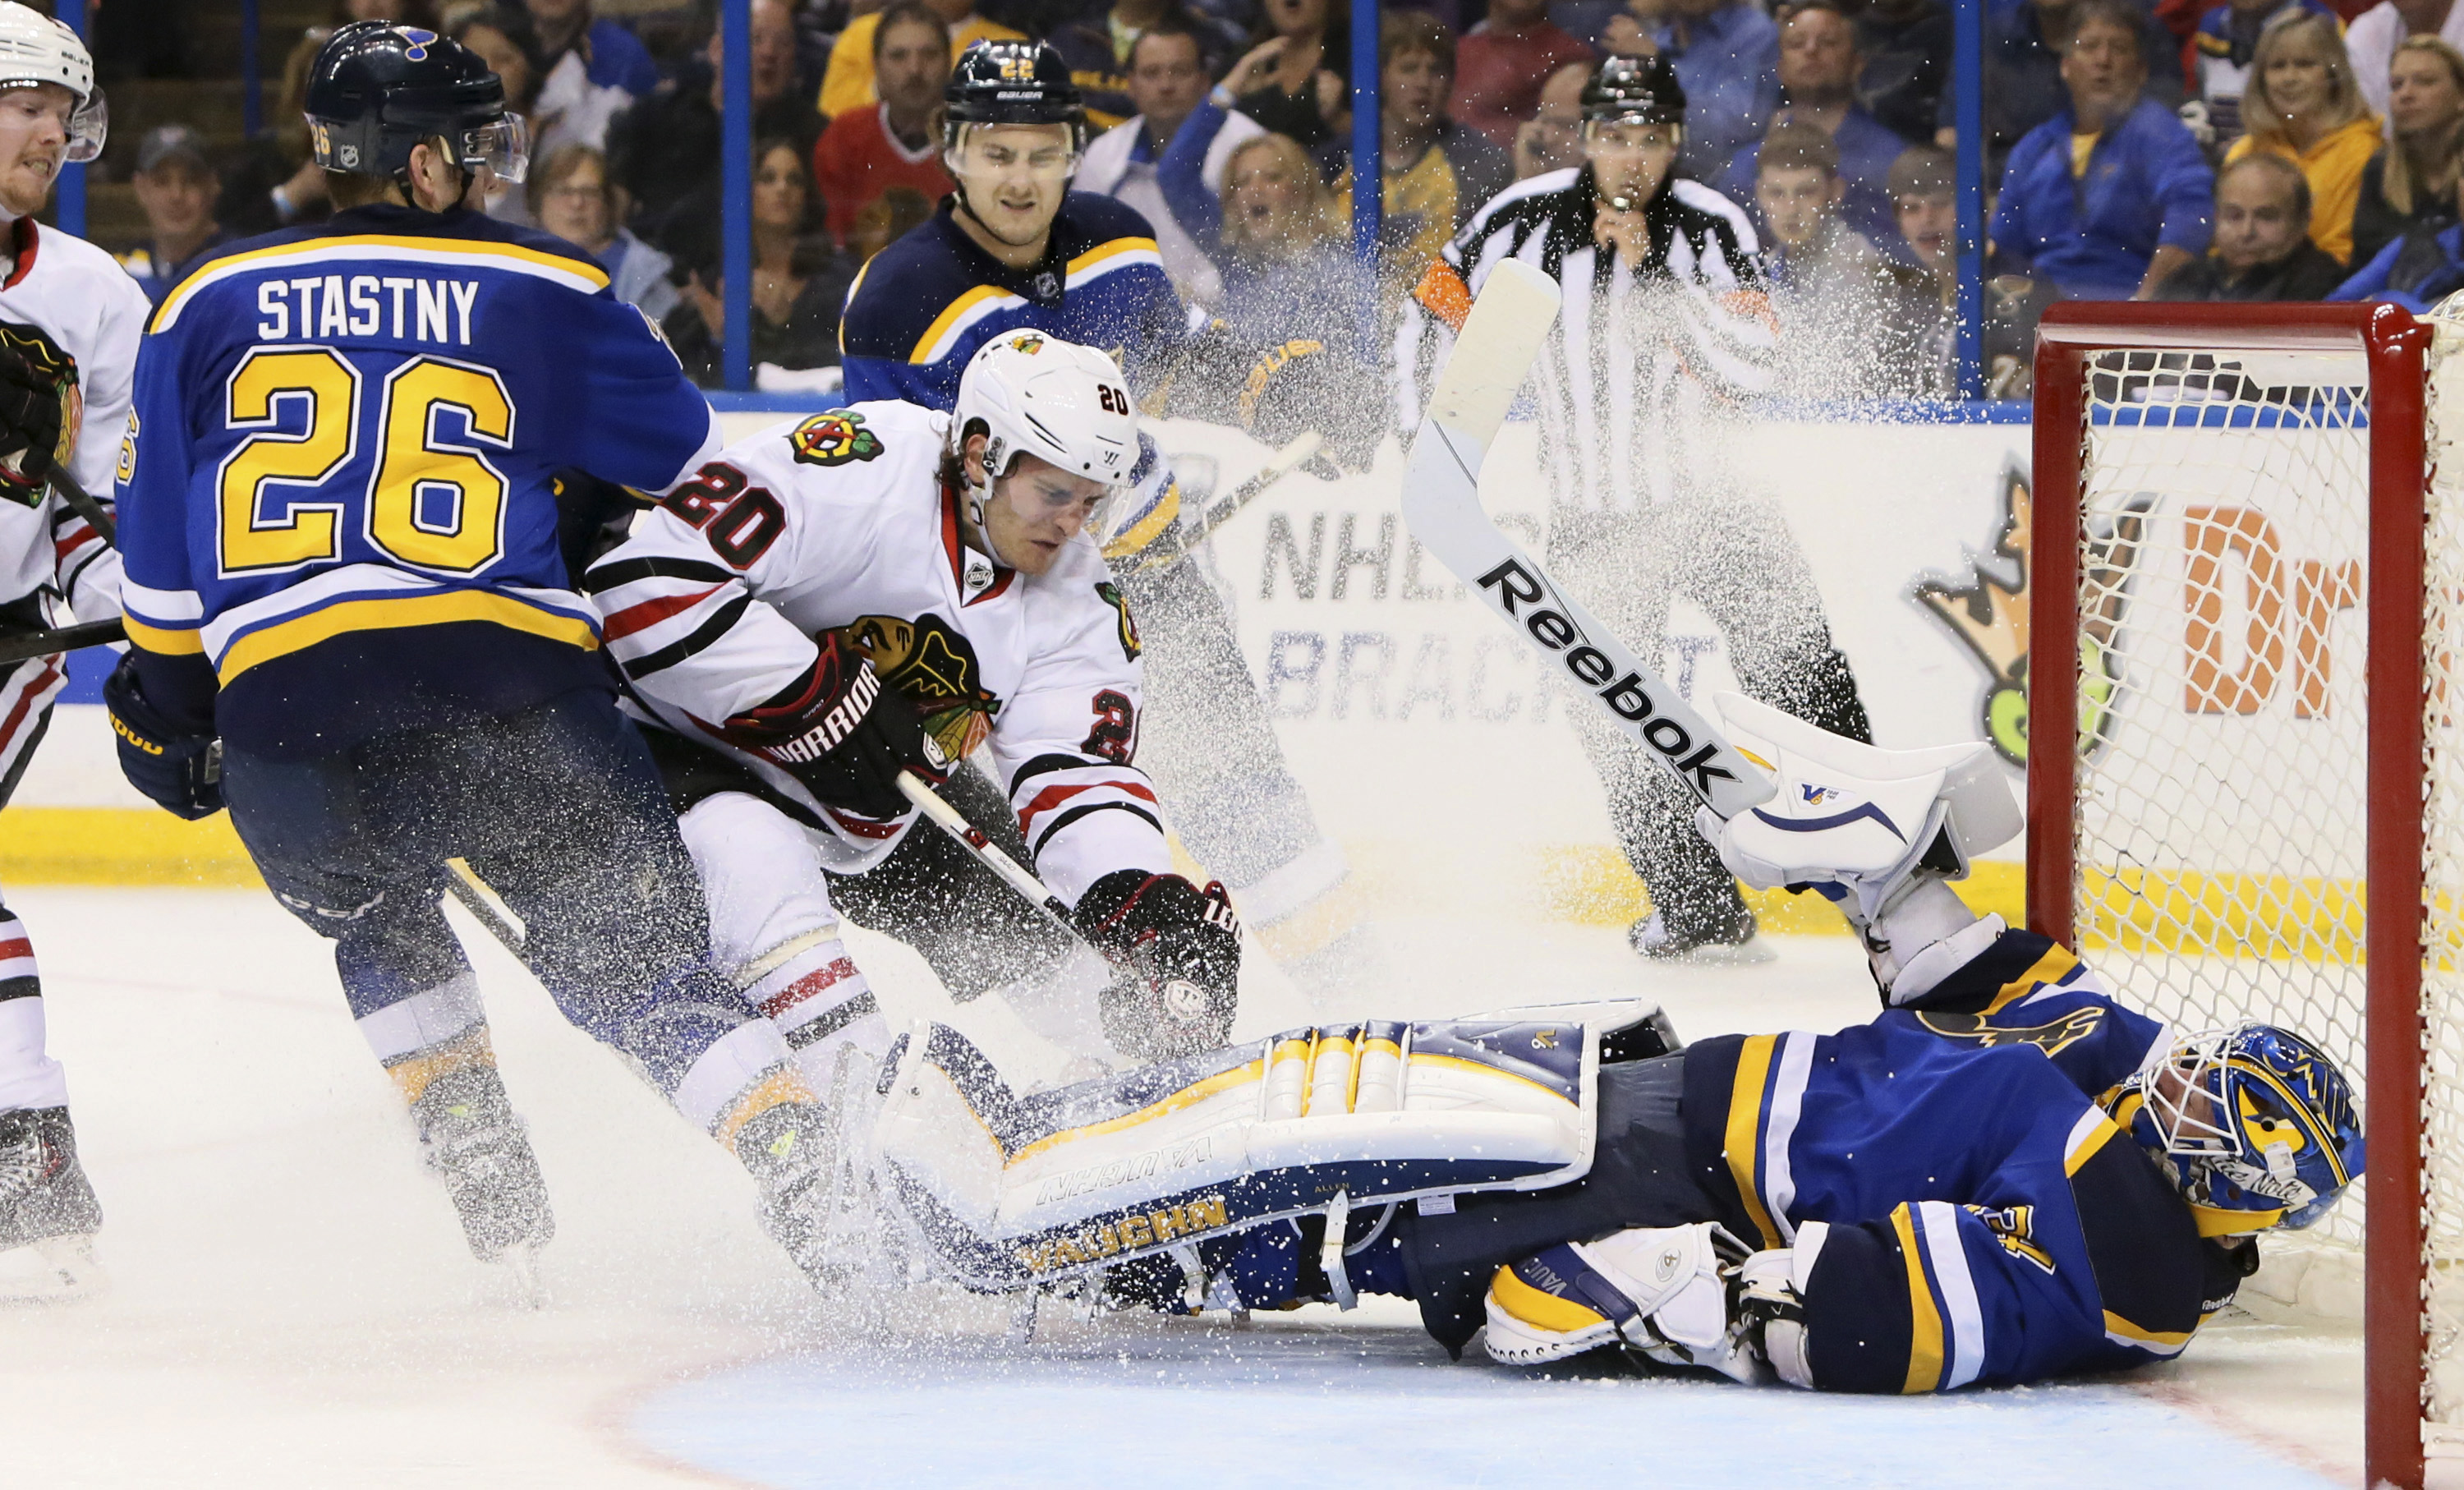 St. Louis Blues goaltender Jake Allen falls back on the puck to cover it up while being pressured by Chicago Blackhawks left wing Brandon Saad (20) during the second period of an NHL hockey game Thursday, April 9, 2015, in St. Louis. (AP Photo/St. Louis Post-Dispatch, Chris Lee)